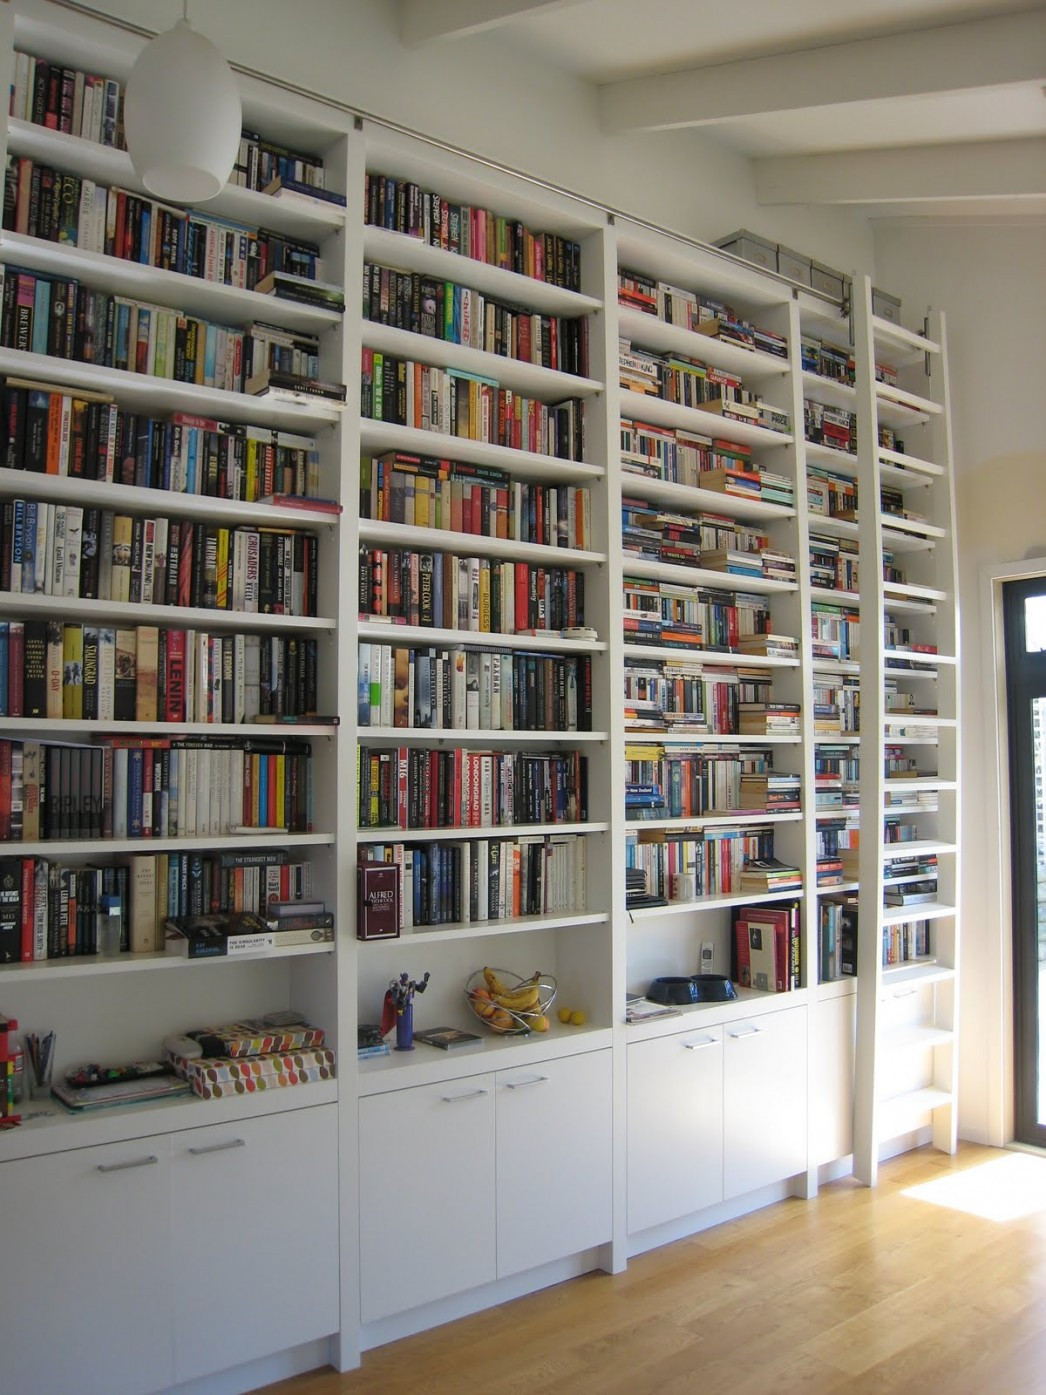 Cheap Shelves Fresh Bookshelf Awesome Cheap Bookshelves for Sale 2 Shelf Of Incredible 45 Pictures Cheap Shelves